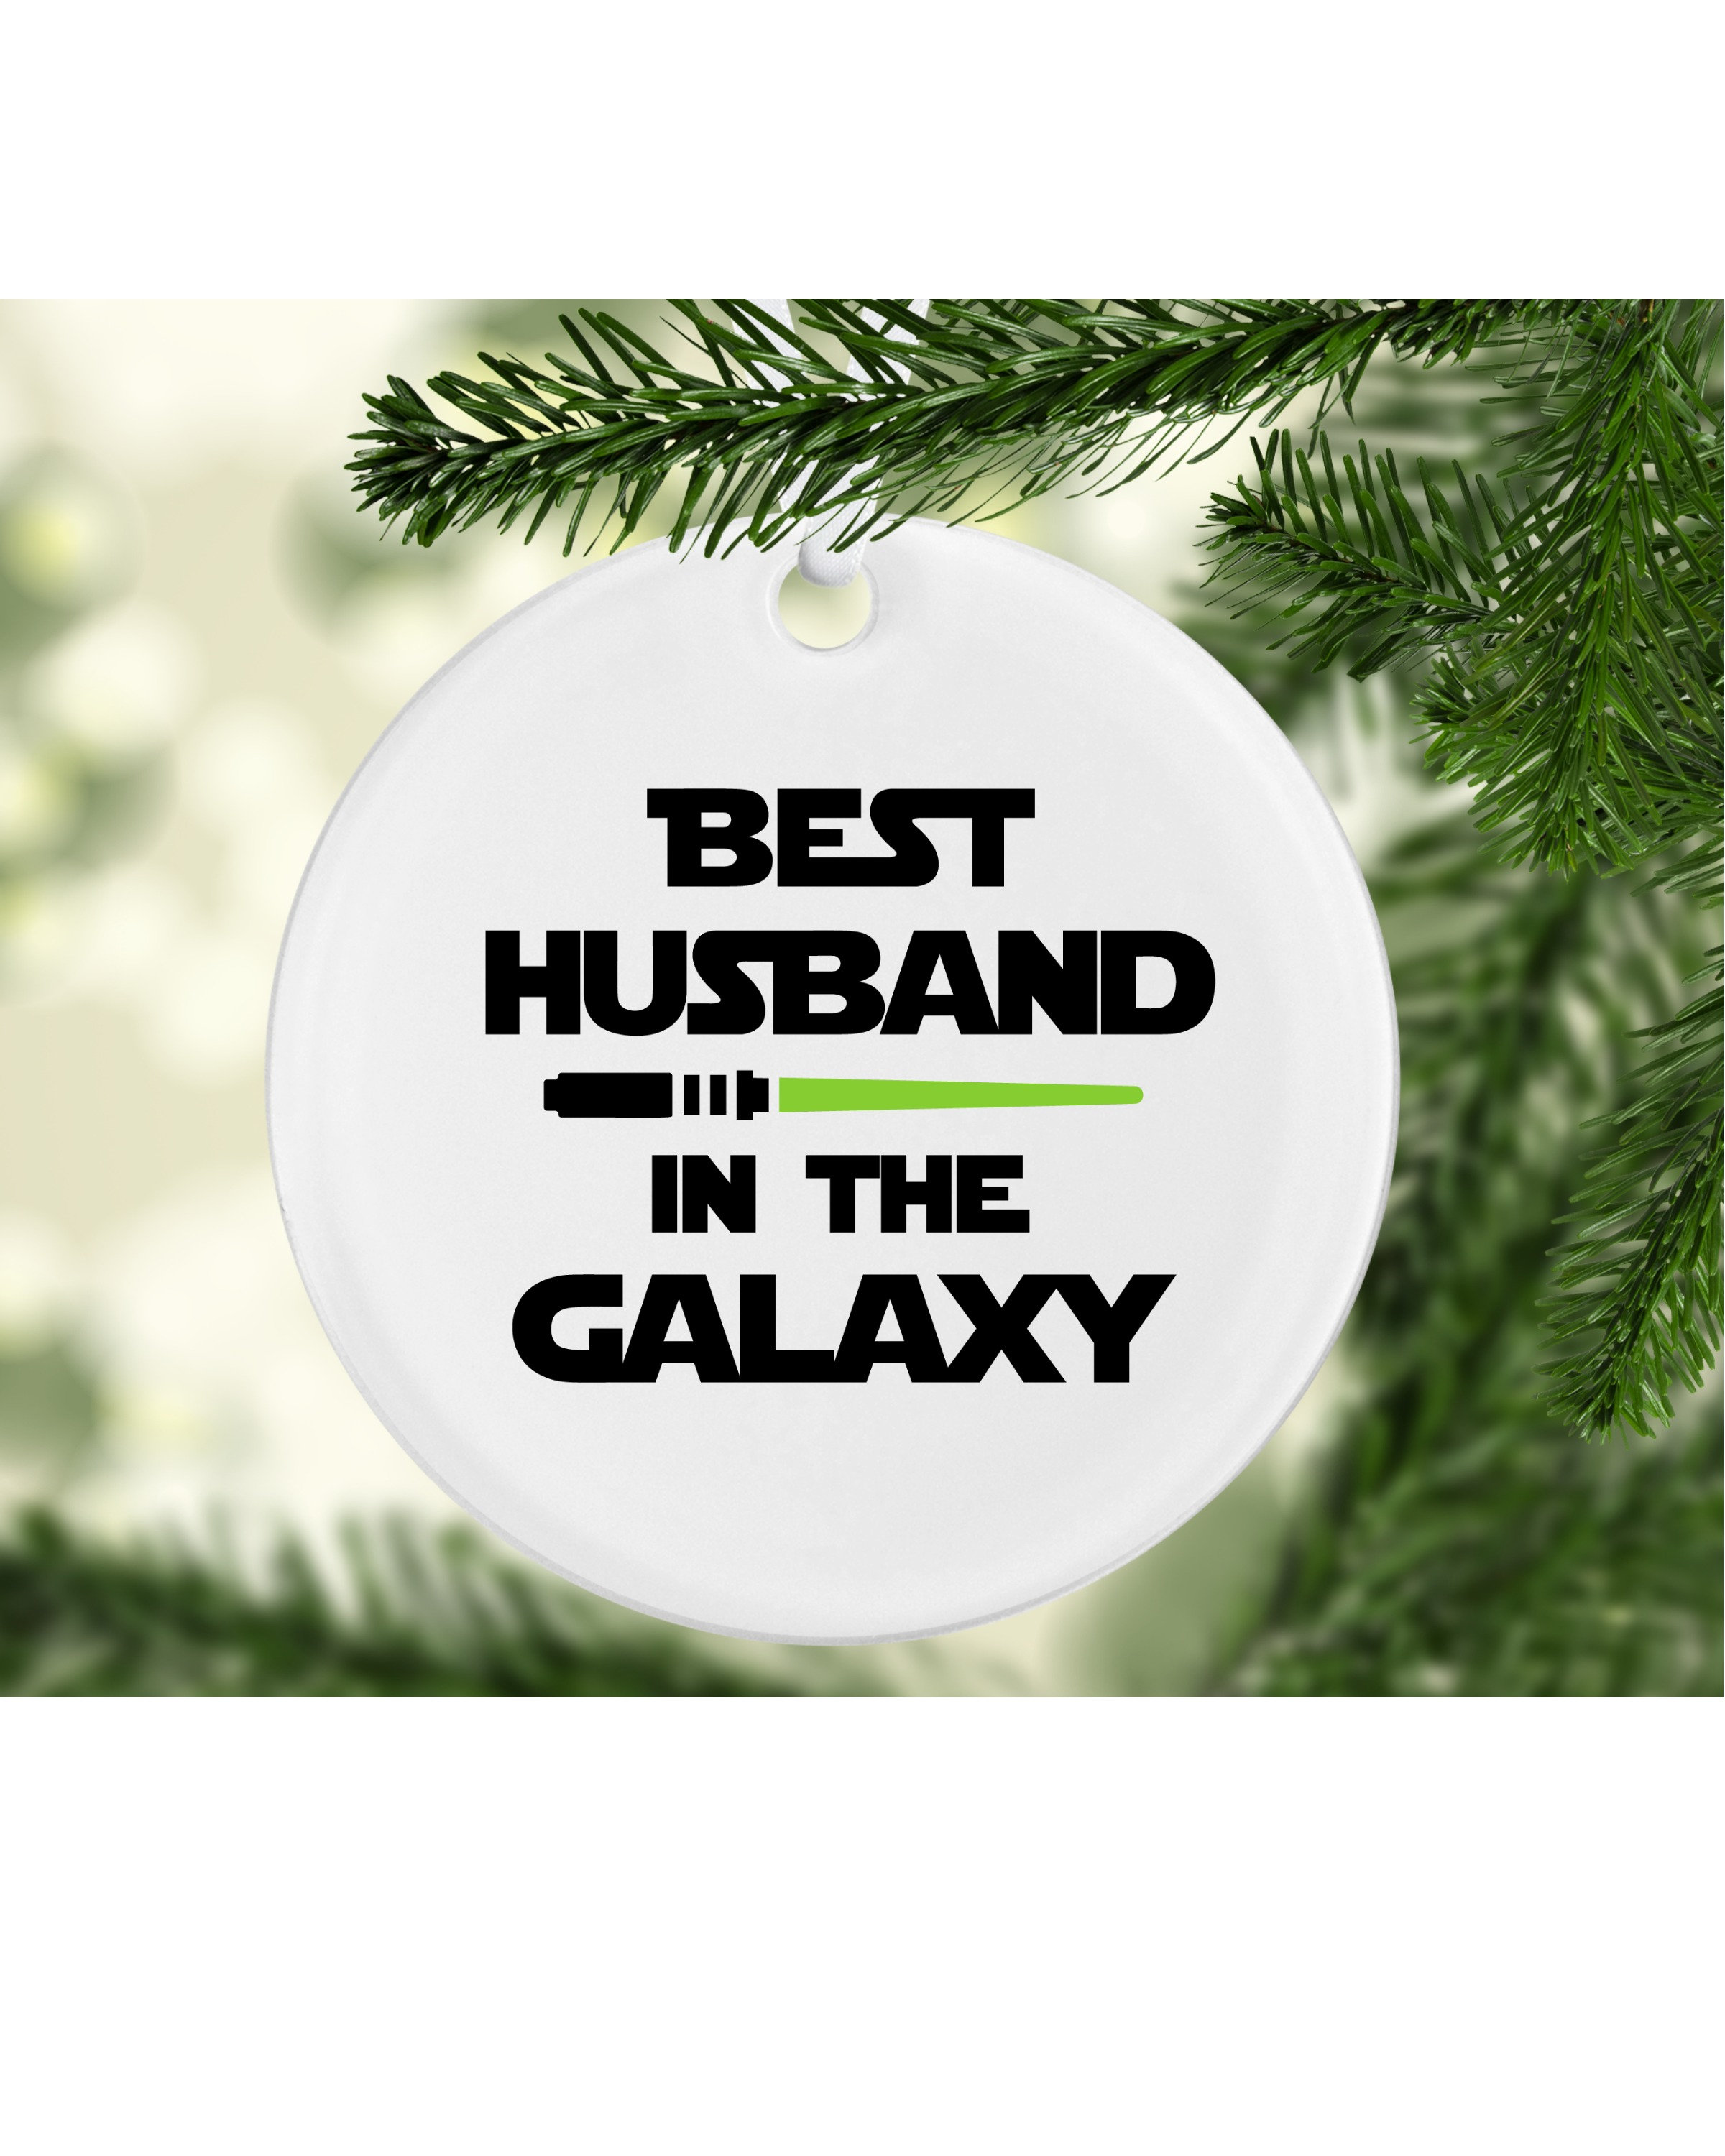 Best Husband in the Galaxy sword Best Husband Ornament | Etsy